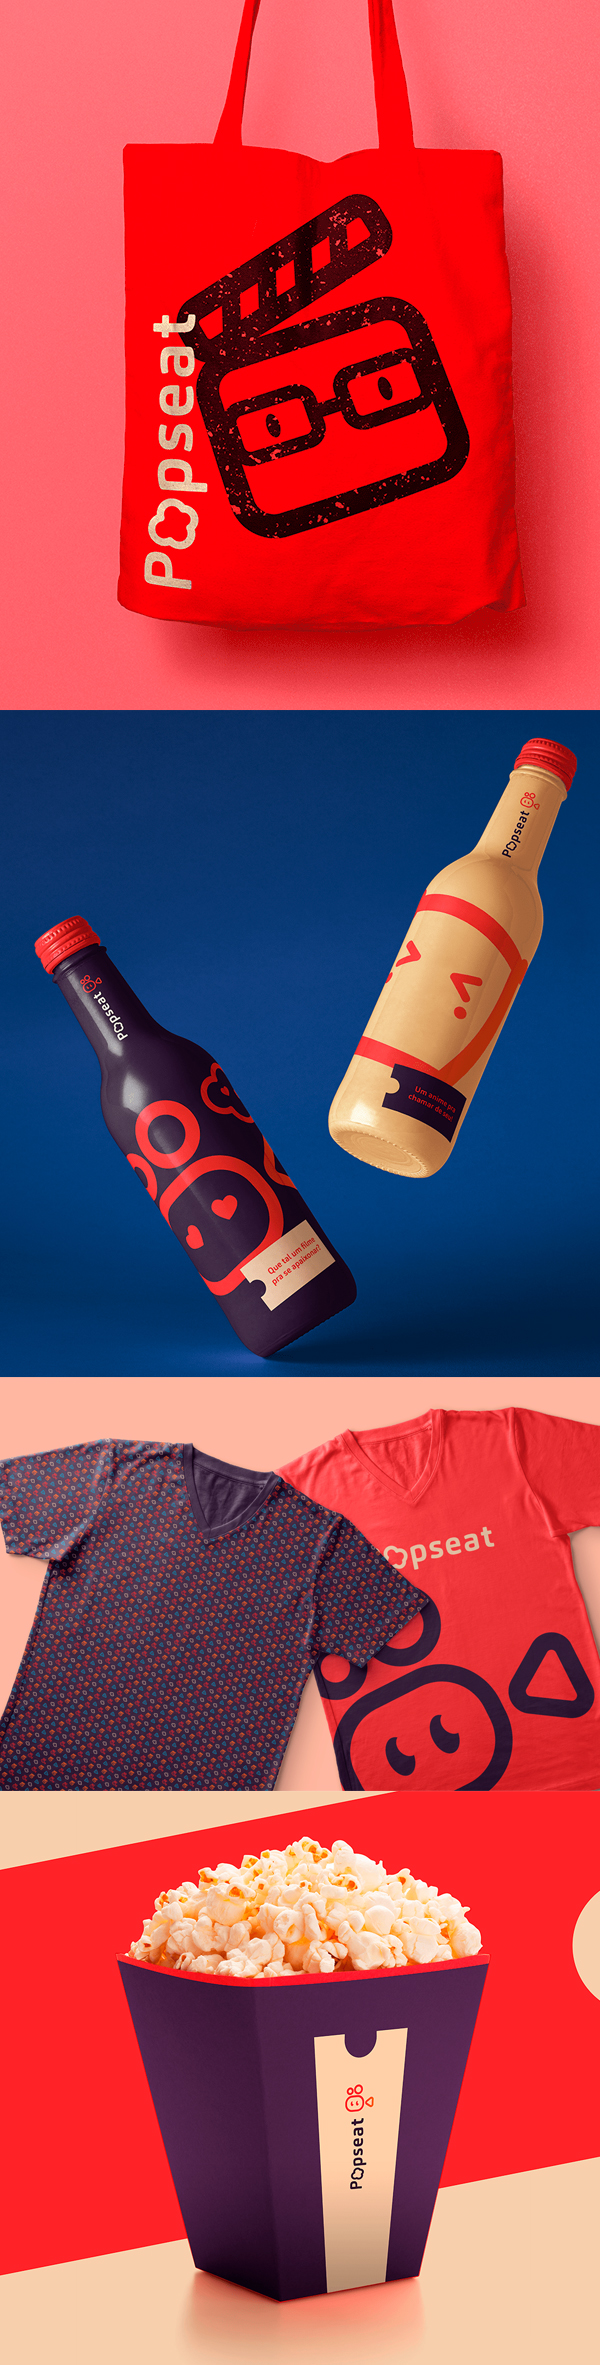 Stationery - Popseat Brand Visual Identity by Renata Caraih